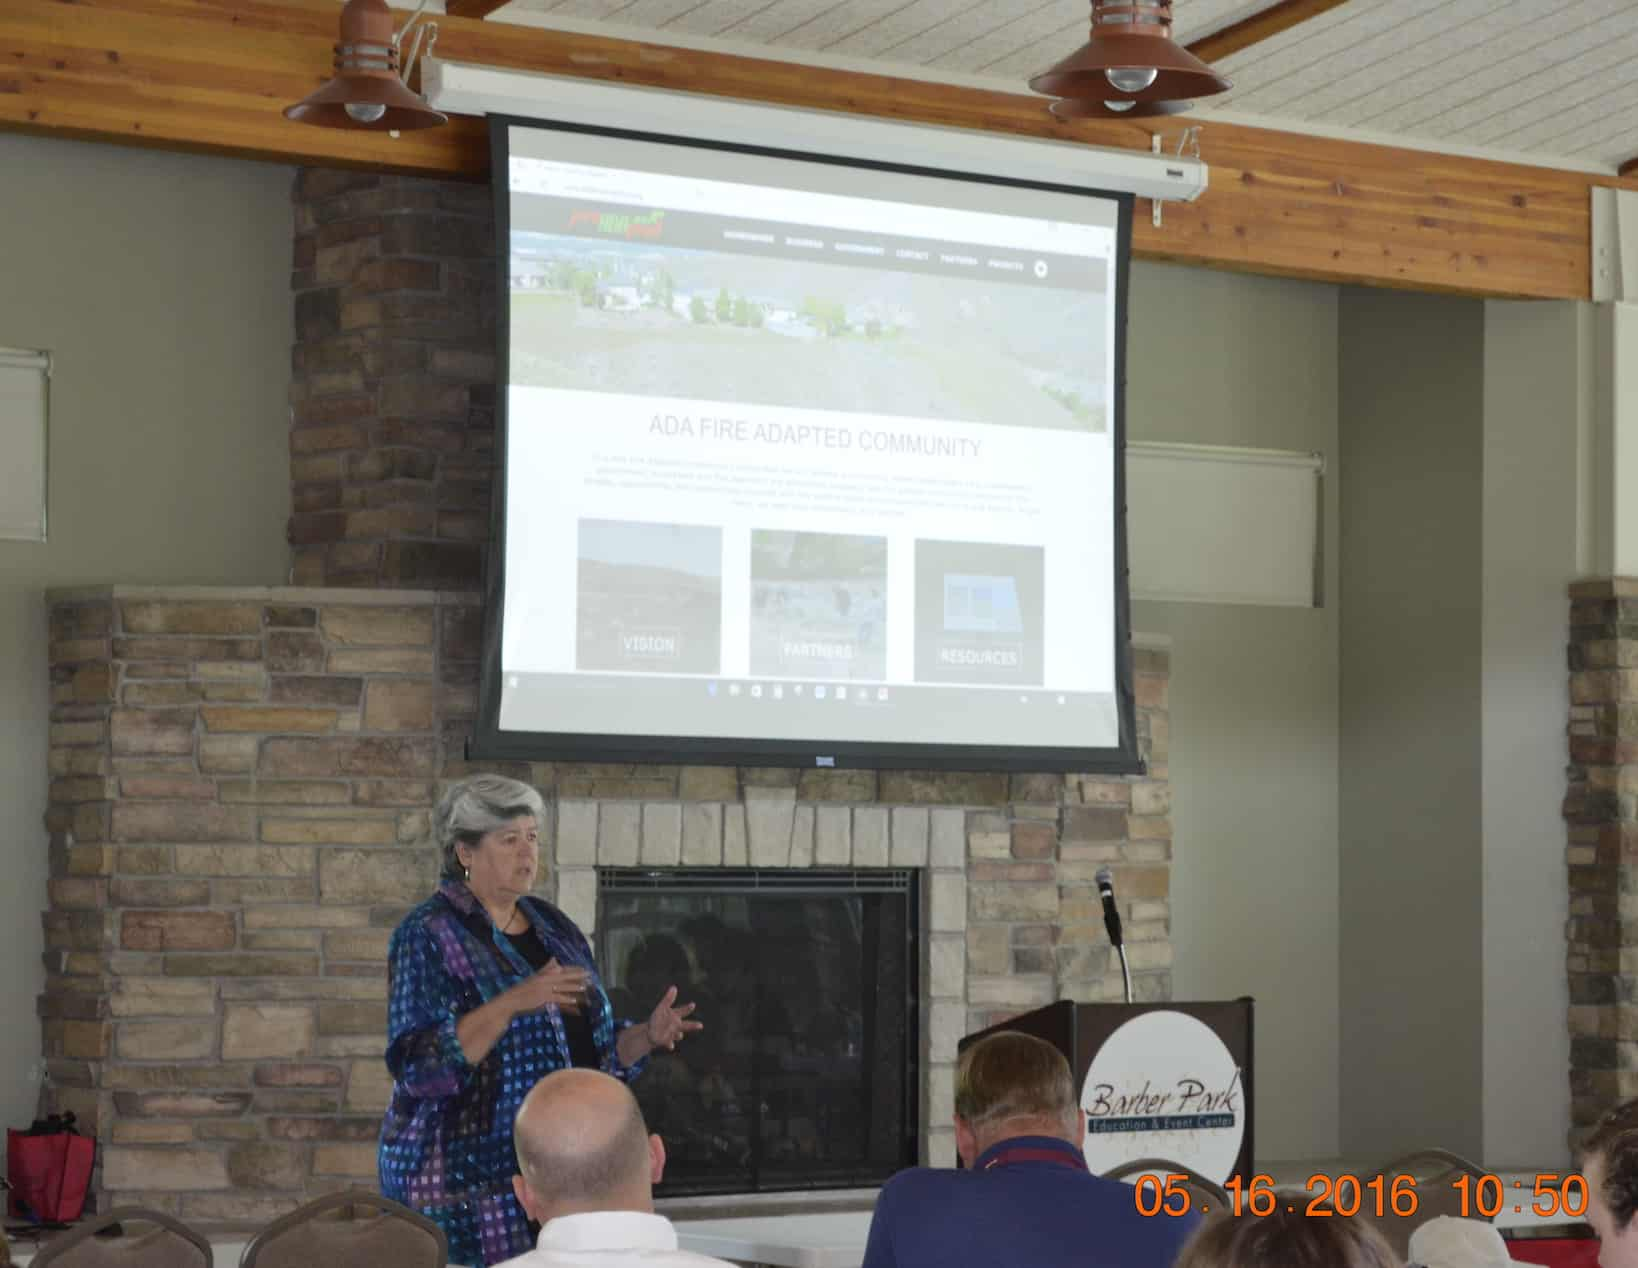 Pam Leschak Sharing the FAC Message Photo Credit: Jennifer Myslivy, State Fire Mitigation & Trespass Specialist, BLM